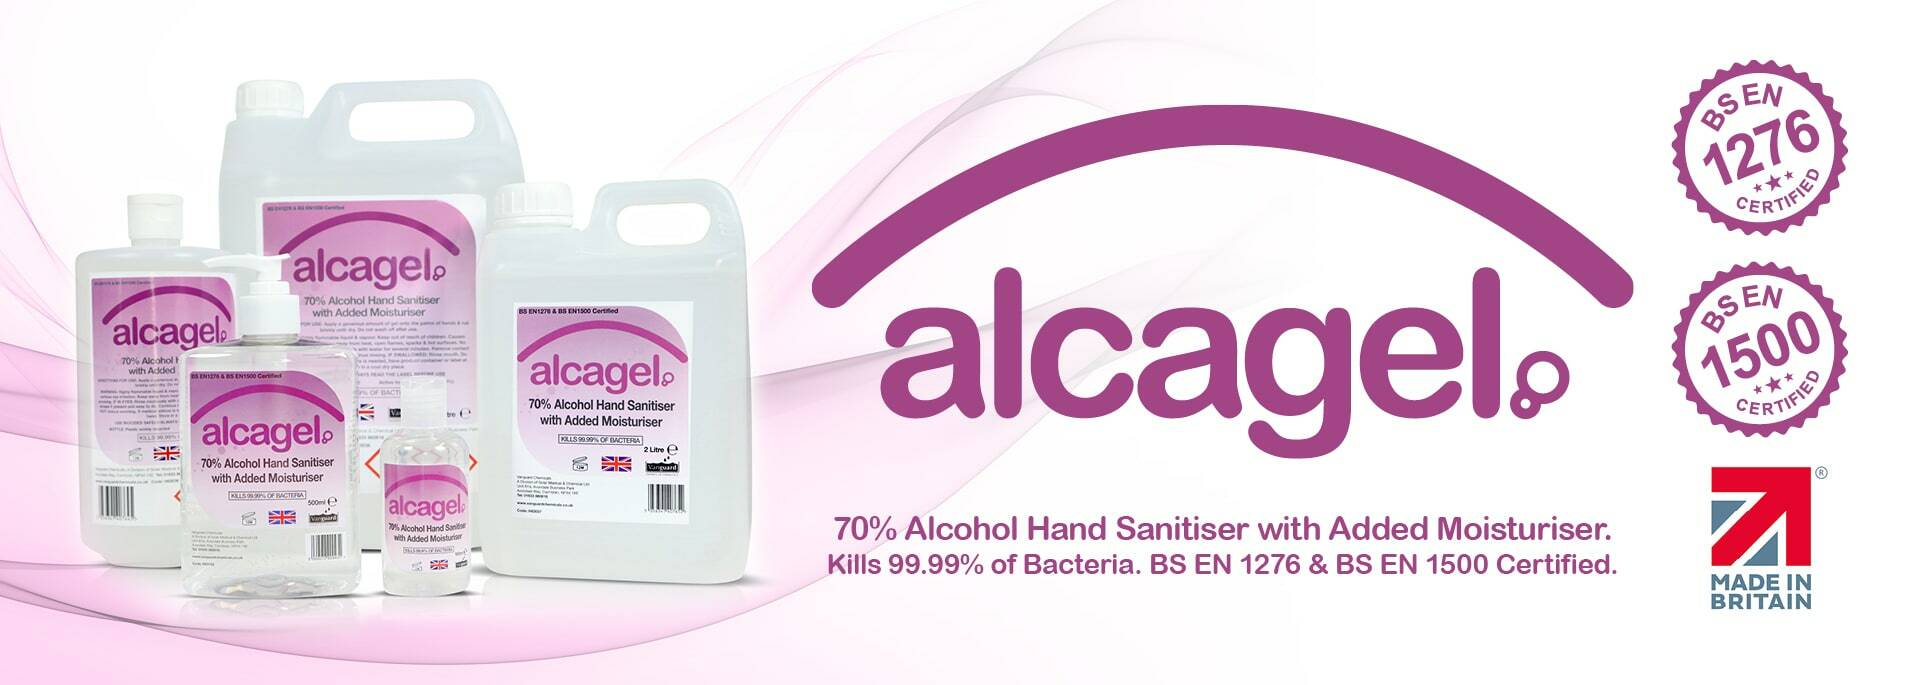 Full Range of Alcagel Available Now!